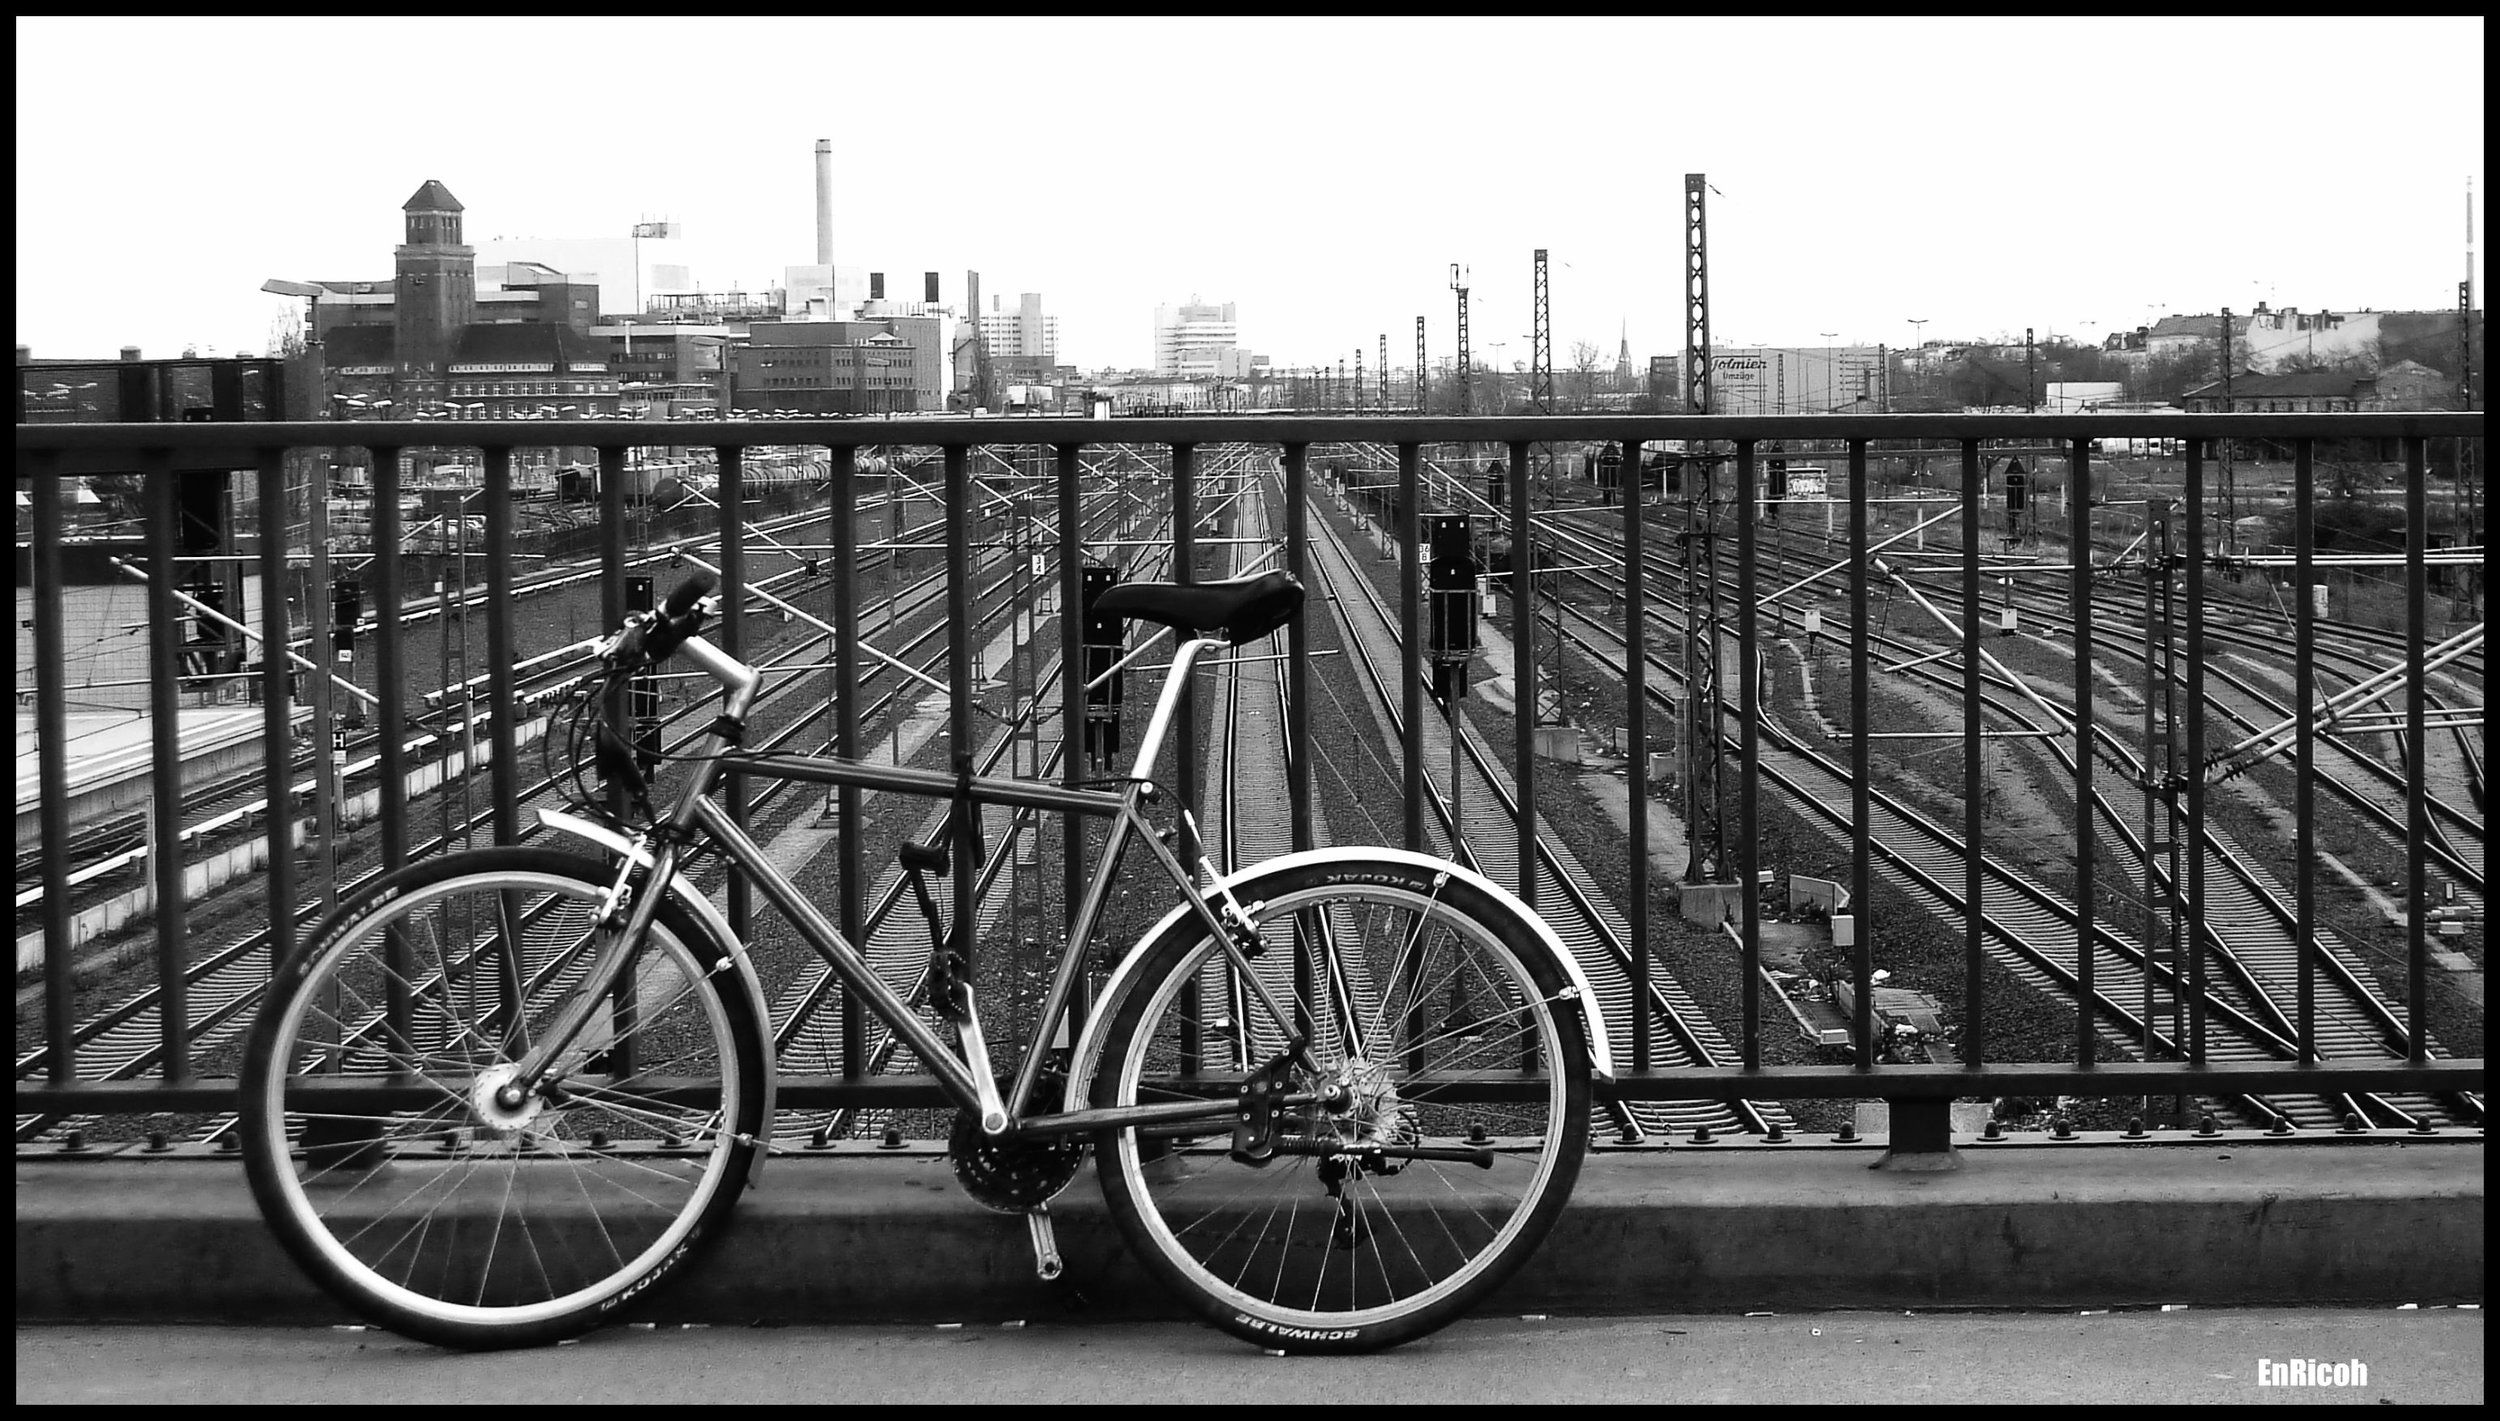 """""""Bicycle""""  by  ernikon  licensed under  CC BY-NC-SA 2.0"""